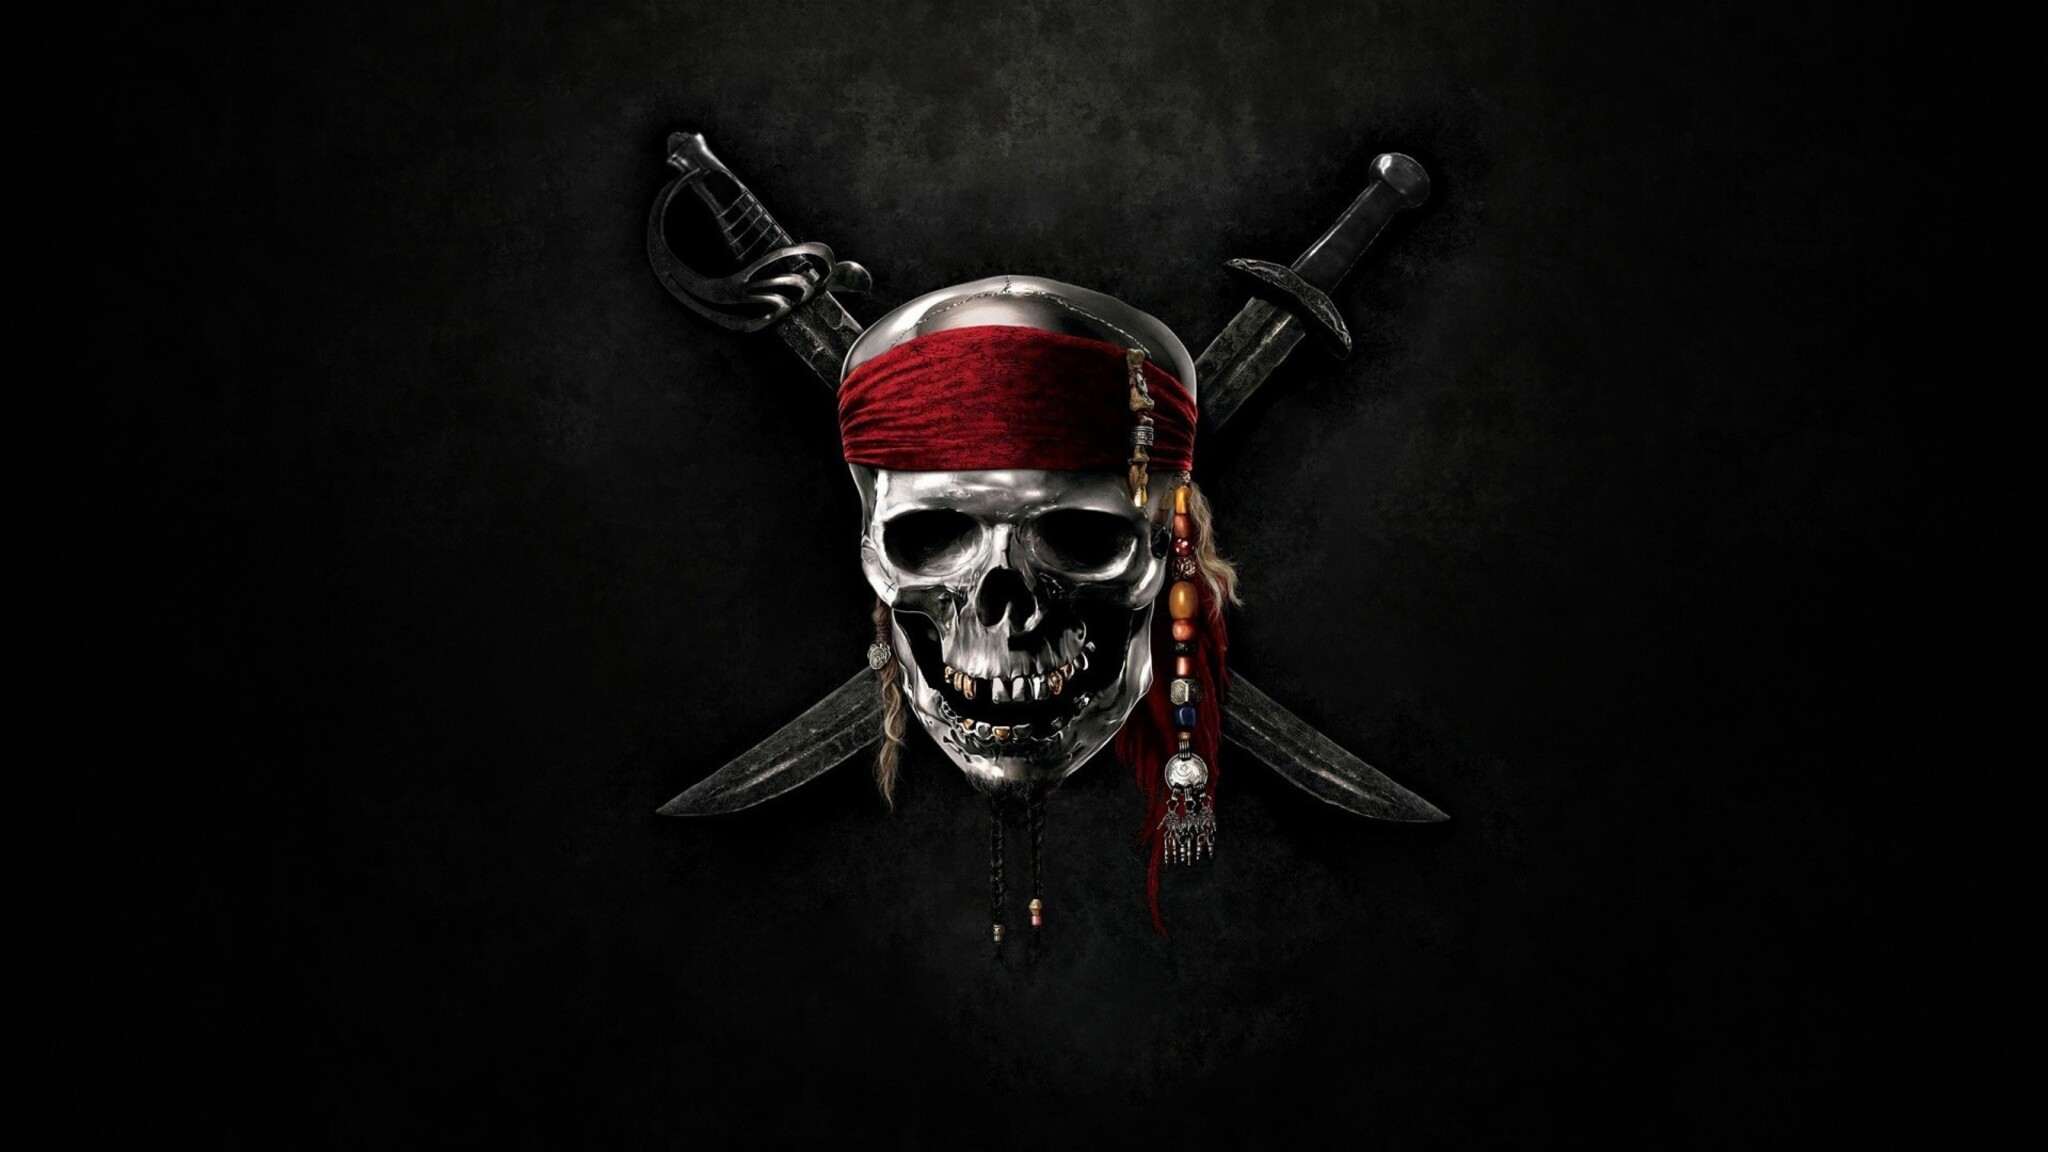 2048x1152 Pirates Of The Caribbean Skull 2048x1152